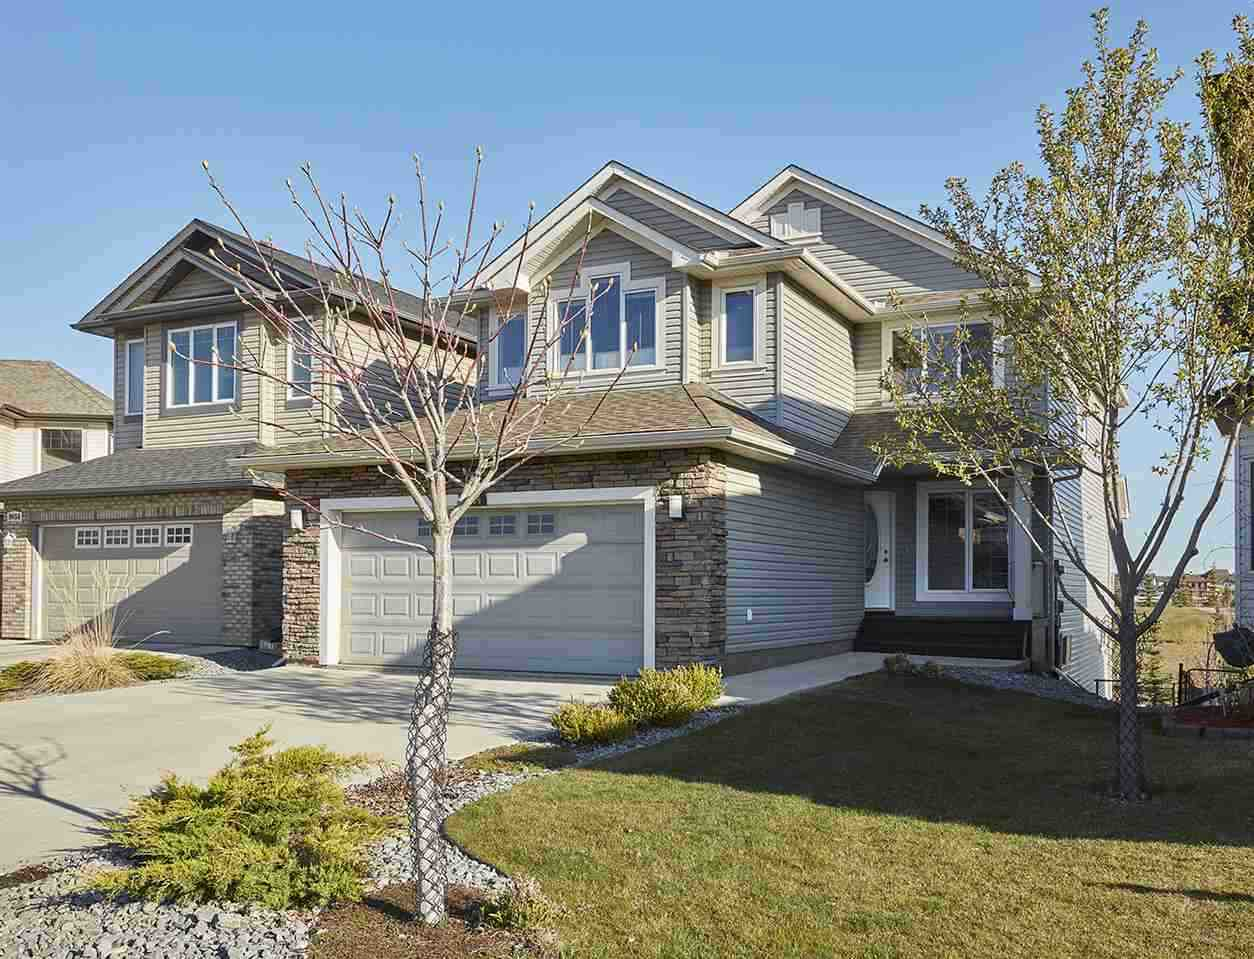 Serenity all year round! Stunning one of a kind views backing onto a pond & located on a quiet cul-de-sac in South Terwillegar. This amazing 2 storey home with over 2240sqft of living space plus an unfinished walkout basement is truly one of a kind. Entering the home you are welcomed by the large foyer with an incredible amount of natural light from the large windows. To your right is the den/home office, continue on into the living room with gas fireplace that is open to the kitchen with large island, dining nook & incredible views of the fully landscaped back yard overlooking the pond. Floor to ceiling windows allow for ample natural light, you can enjoy the views from the living room & kitchen! Step out side on to the large deck perfect for summer bbq's. A half bath & laundry room complete the main floor. Upstairs you will find a large bonus room for family movie nights, the hotel feel master bdrm with 5 piece ensuite & 2 add'l bdrms are a great size that complete the 2nd level.The perfect location!